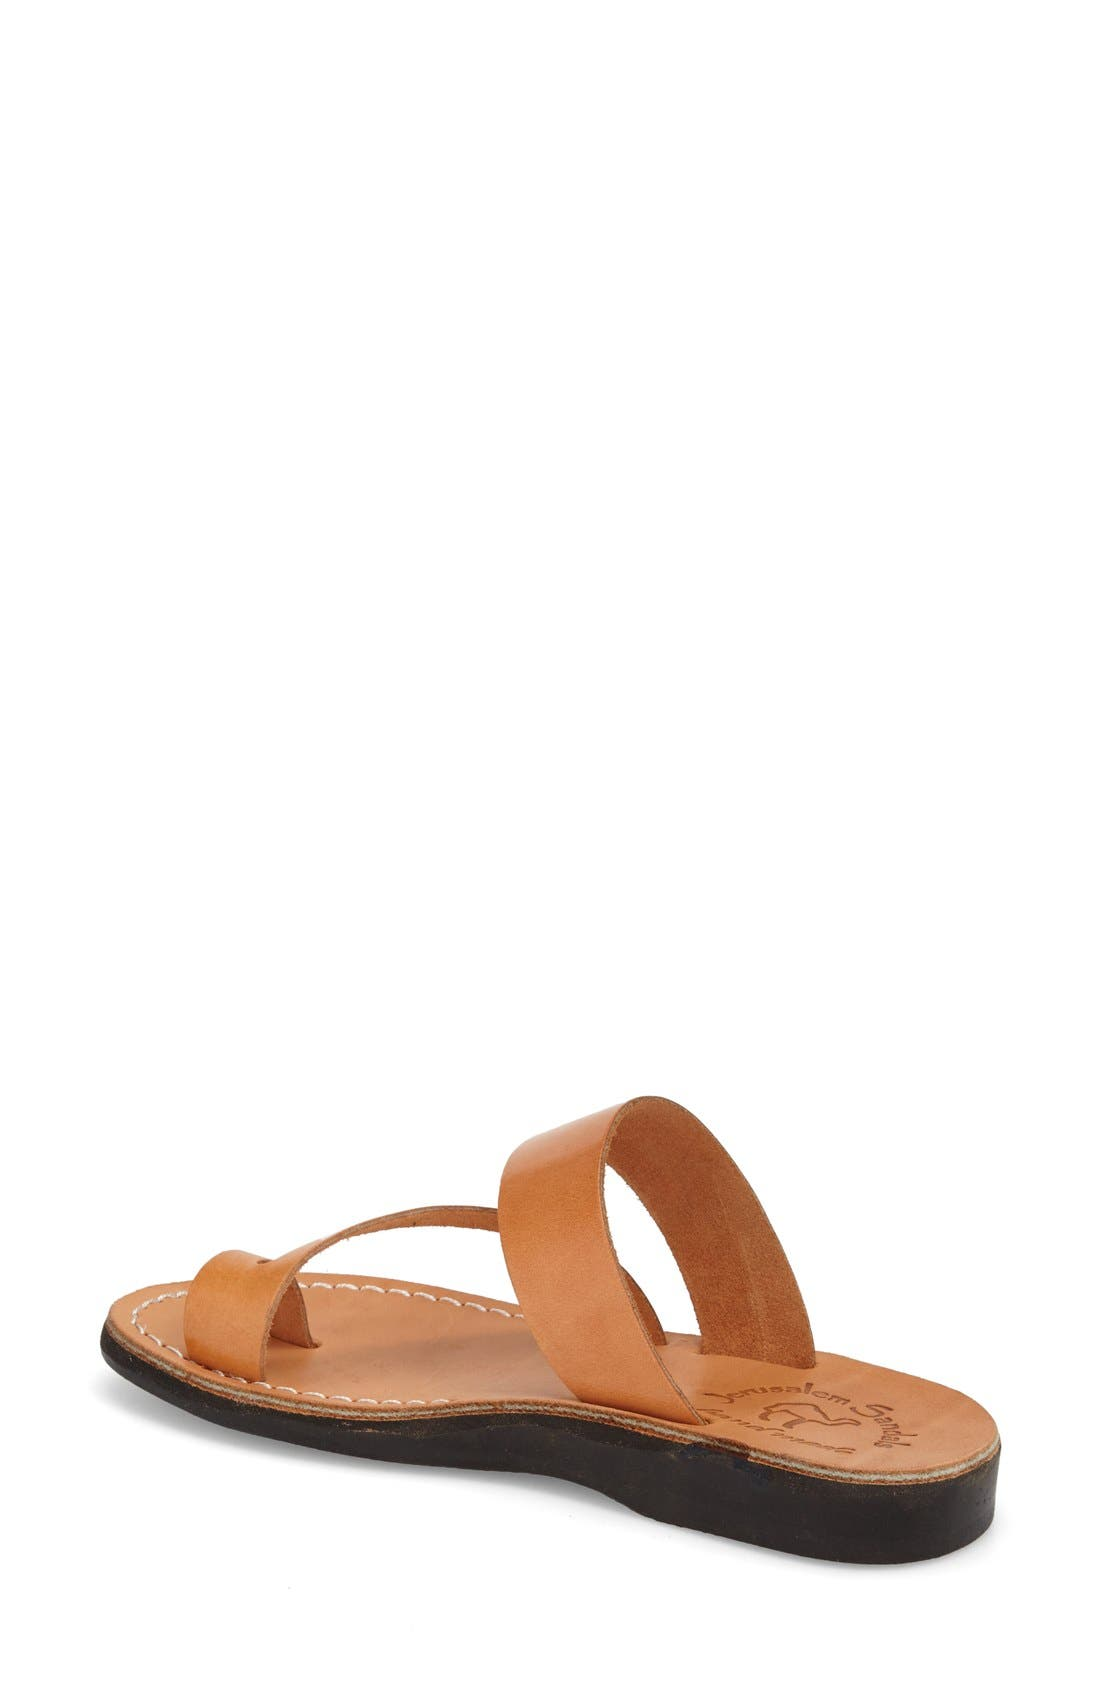 'Zohar' Leather Sandal,                             Alternate thumbnail 7, color,